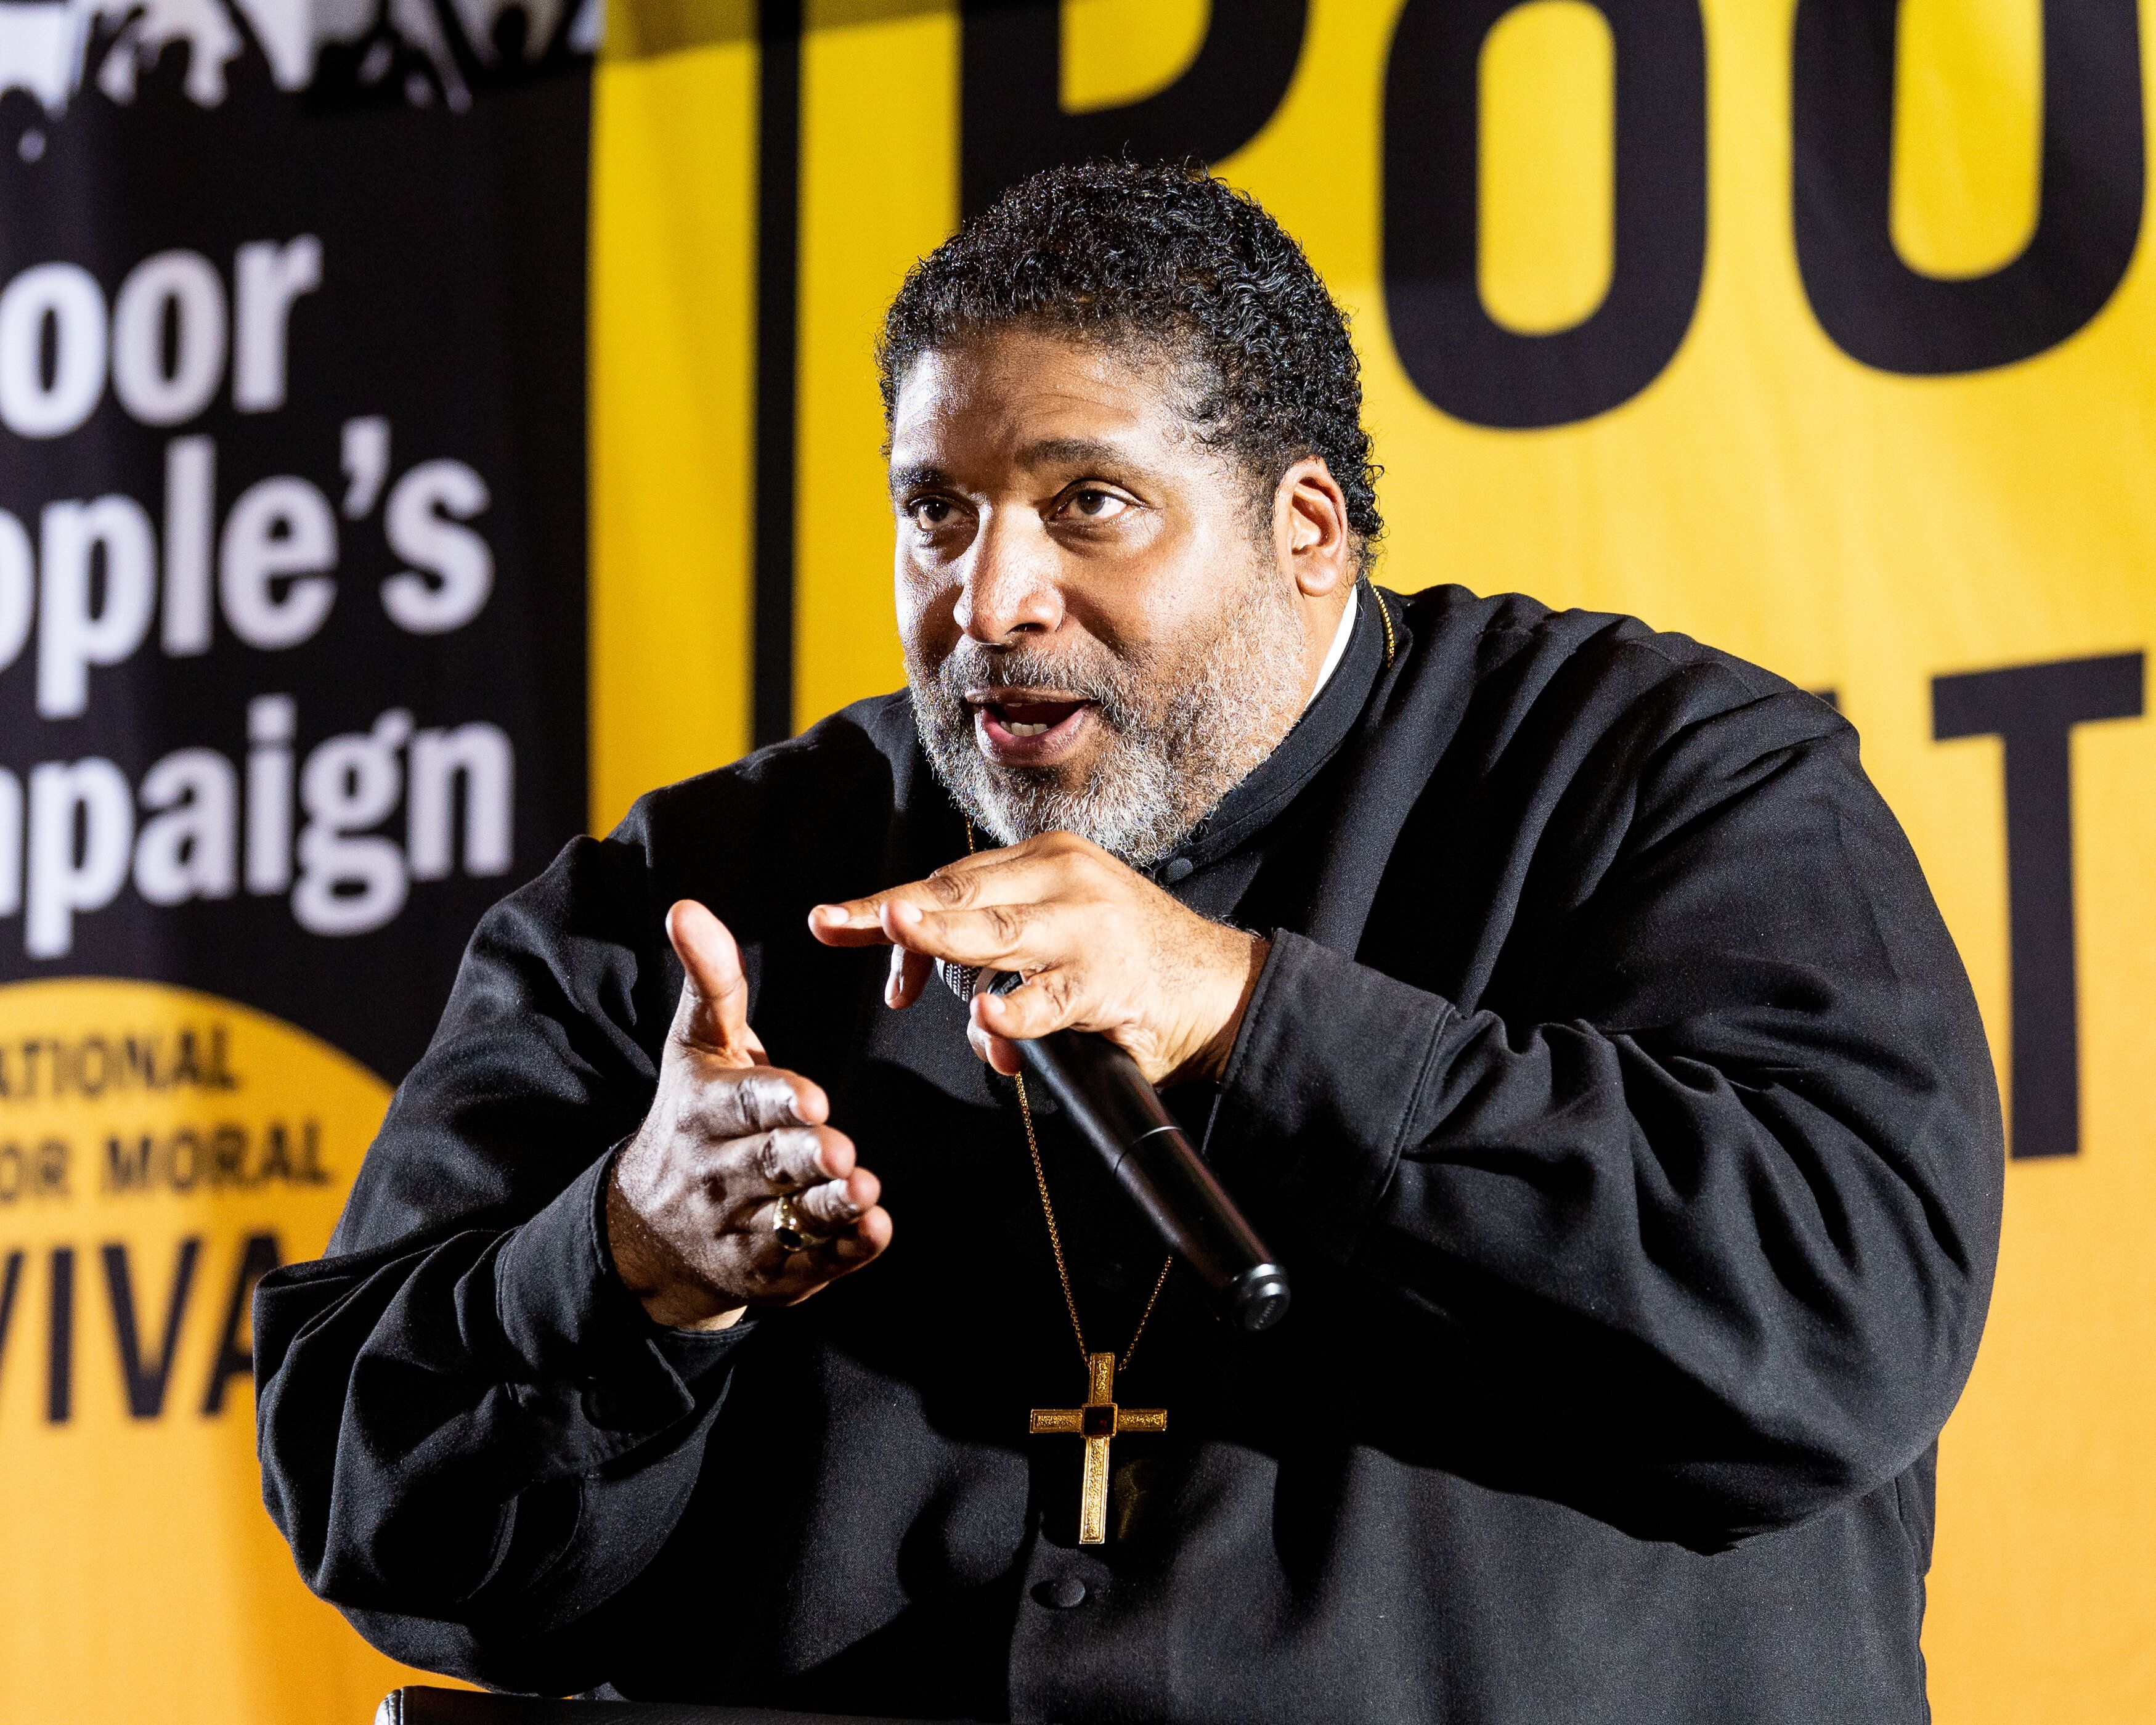 Rev. William J. Barber II speaks at a Poor People's Campaign event in Washington, DC on June 17, 2019.